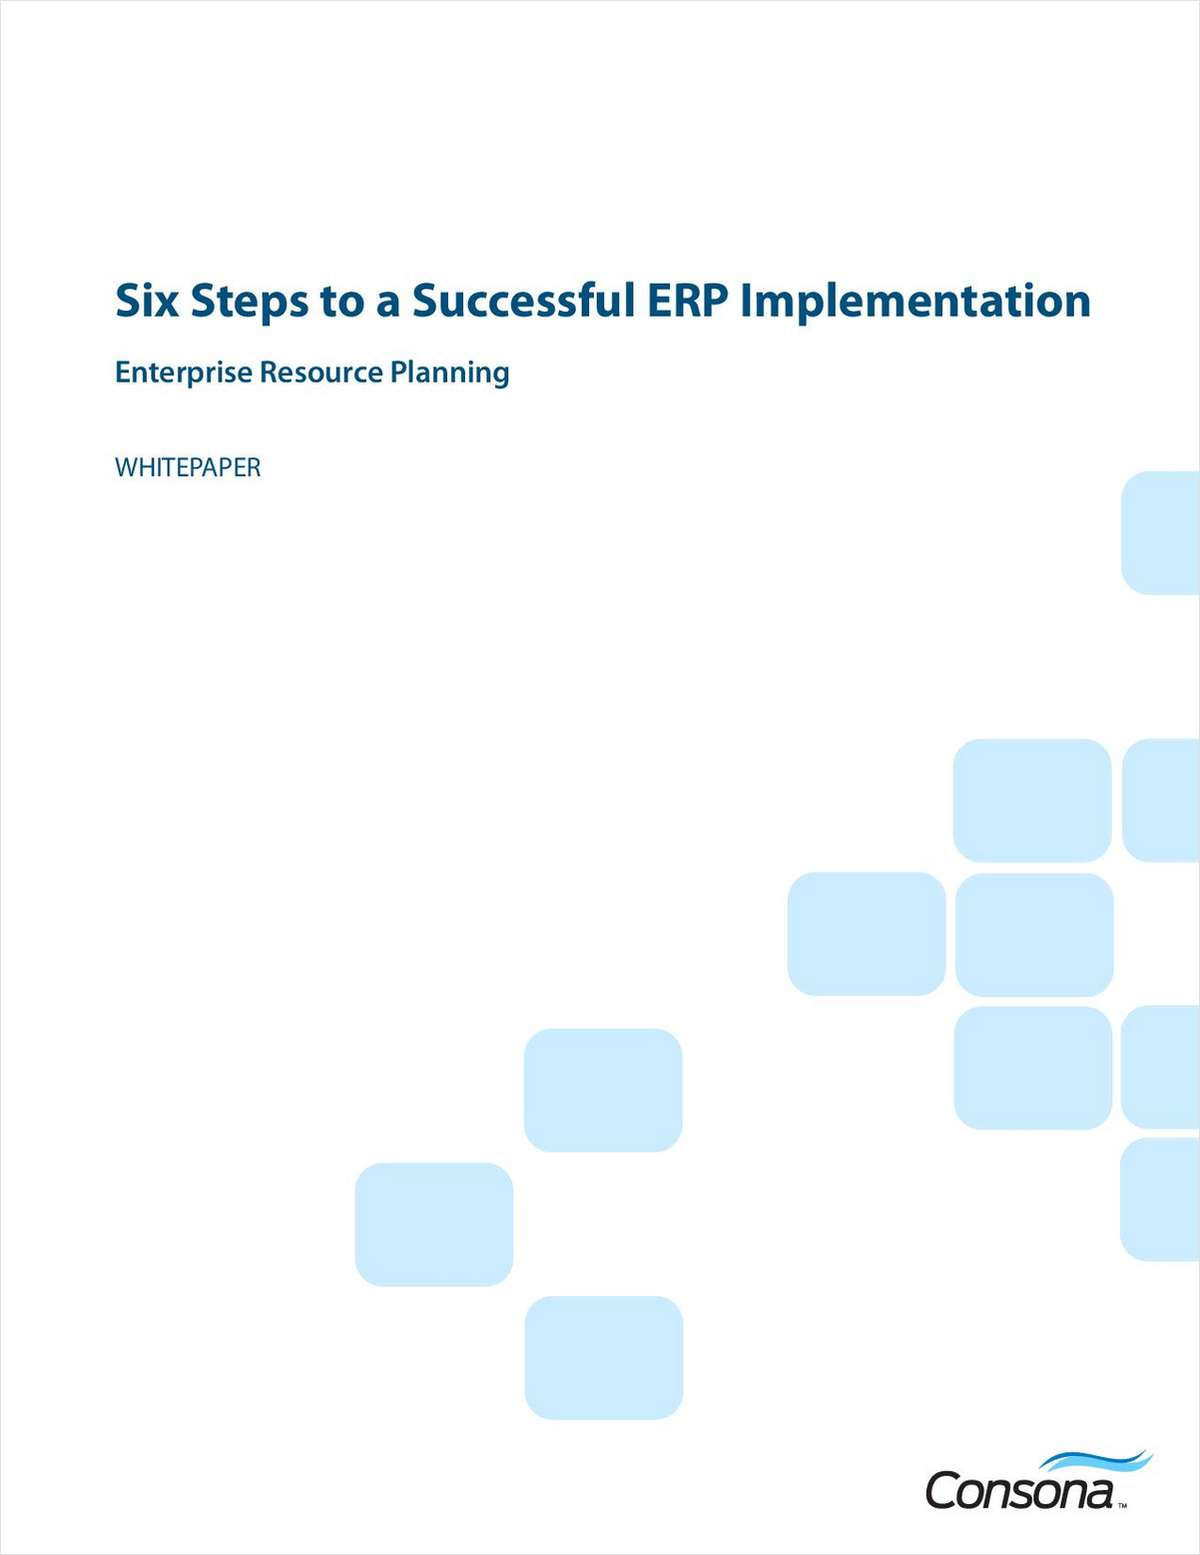 Six Steps to a Successful ERP Implementation